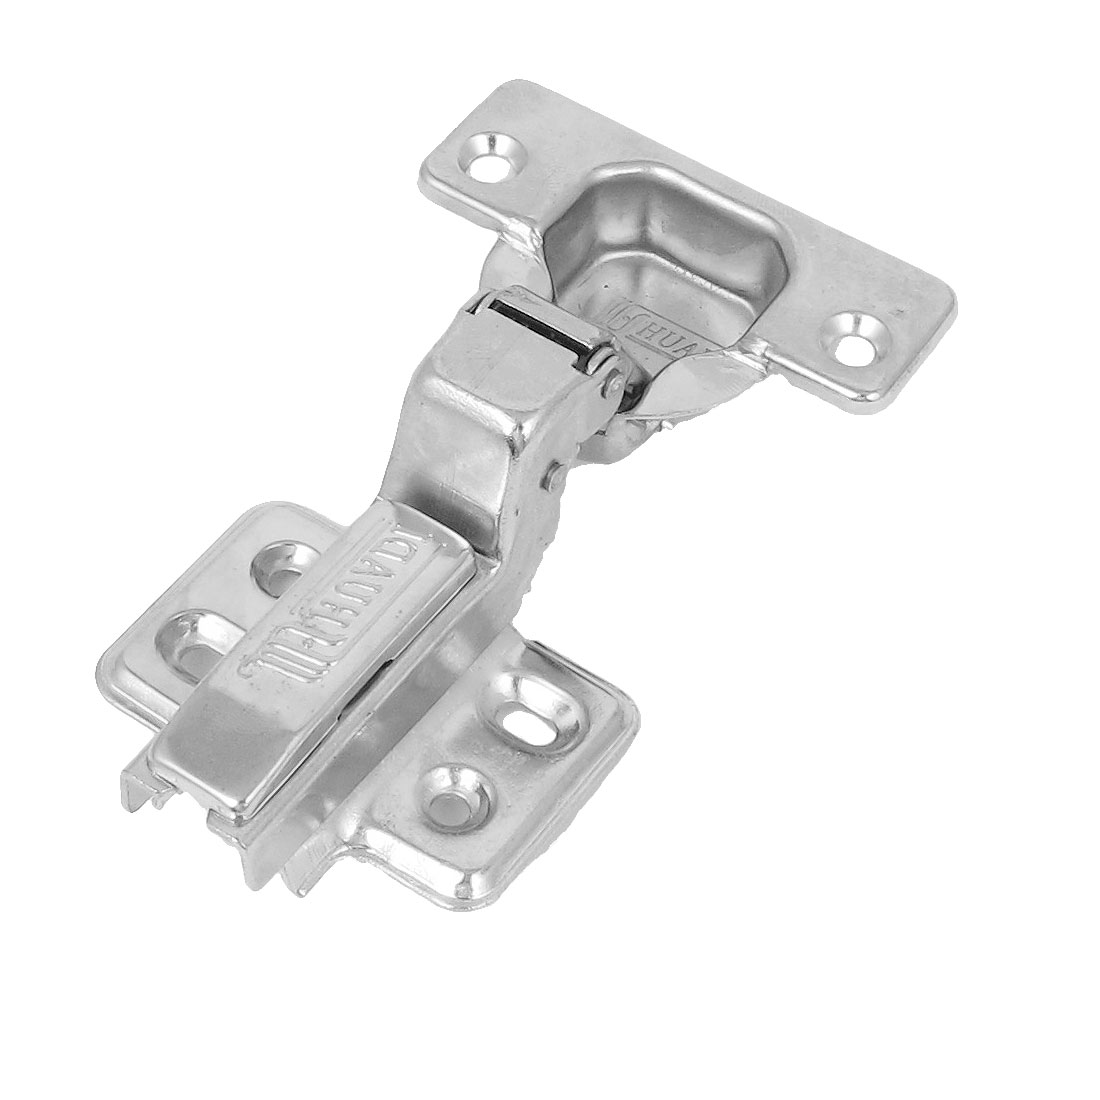 Cabinet Door Cupboard Drawer Metal Adjustable Angle Self Closing Inset Concealed Hinge(China)